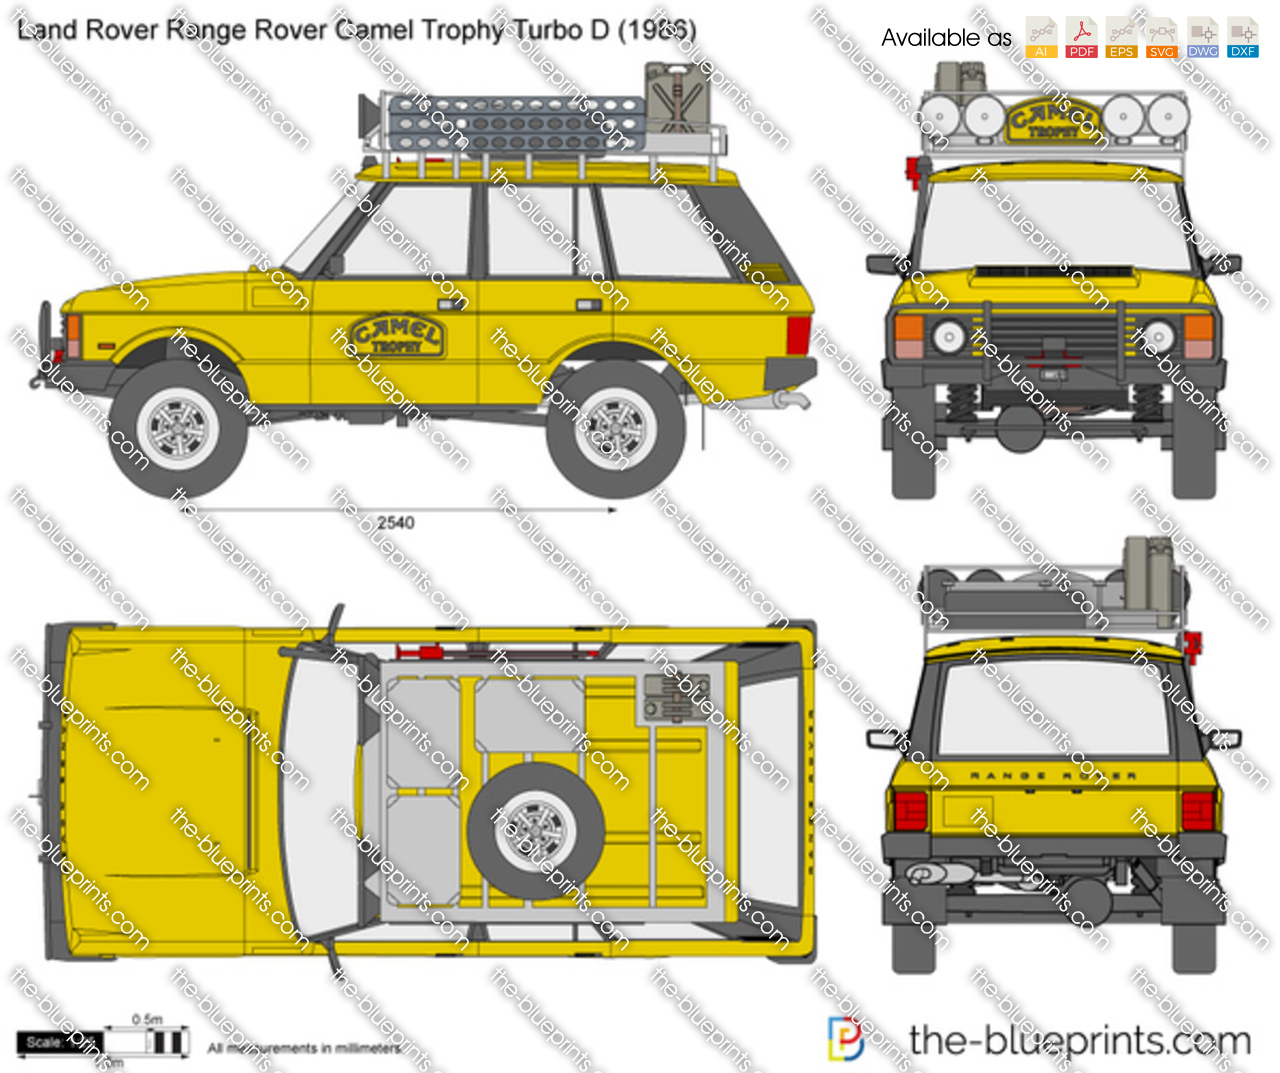 Land Rover Range Rover Camel Trophy Turbo D